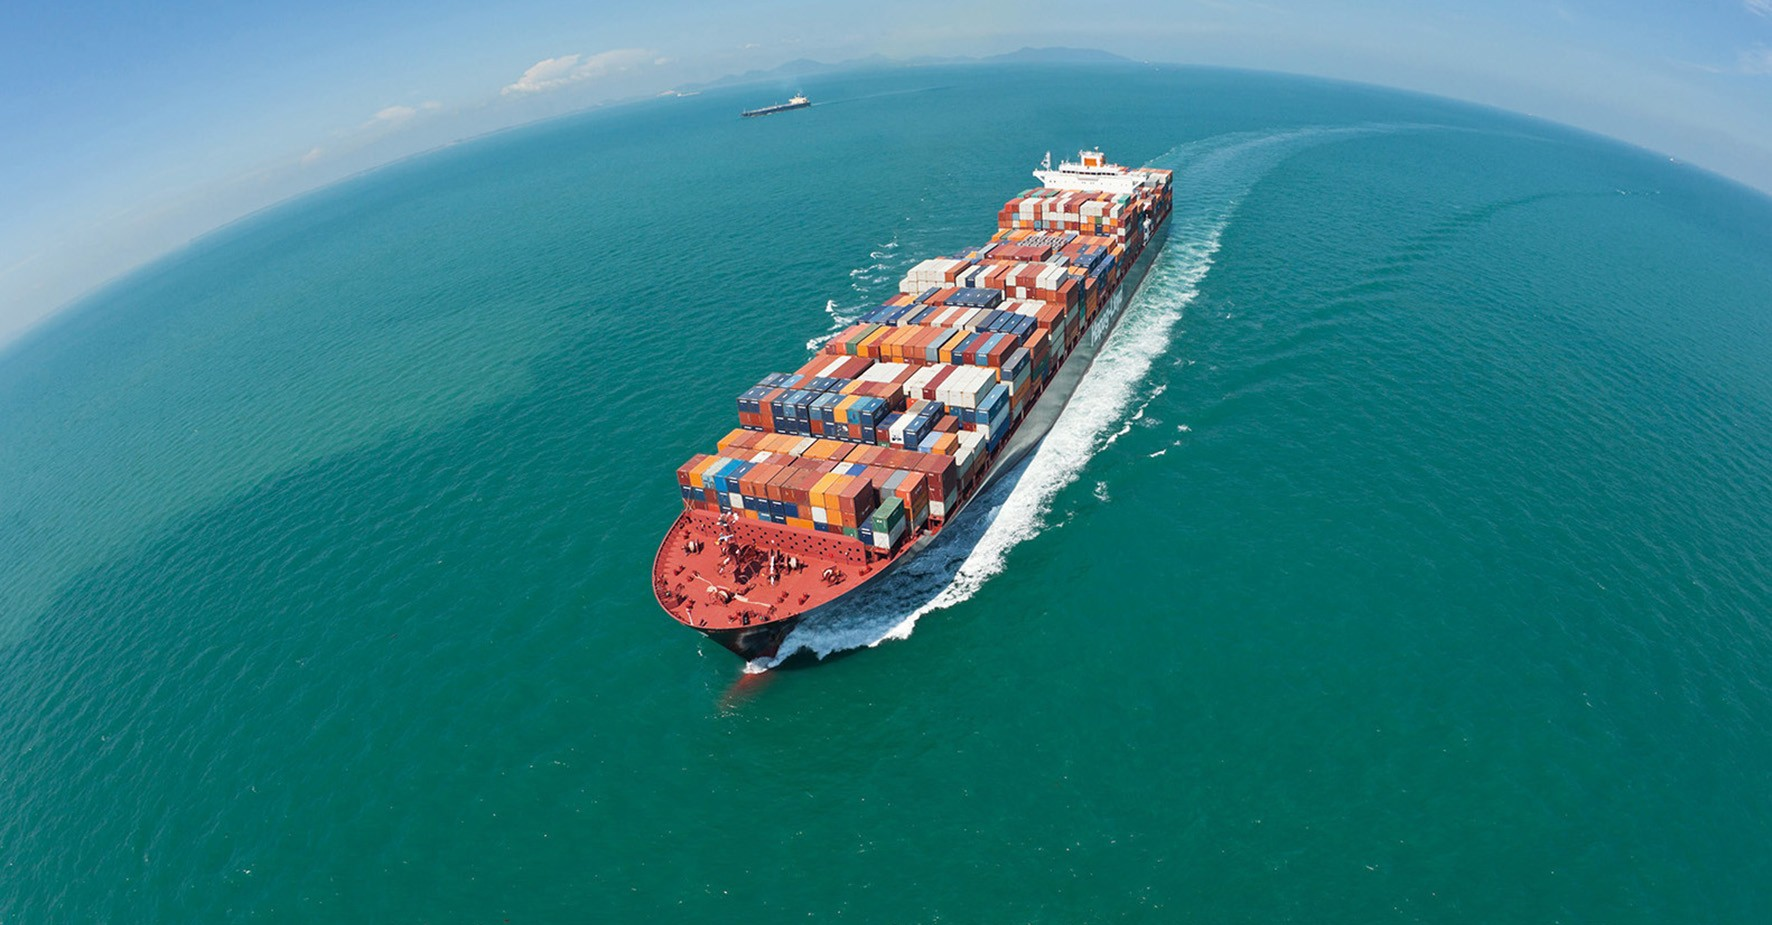 Hapag-Lloyd and Kuehne + Nagel agree to 17 percent CO2 reduction by 2020